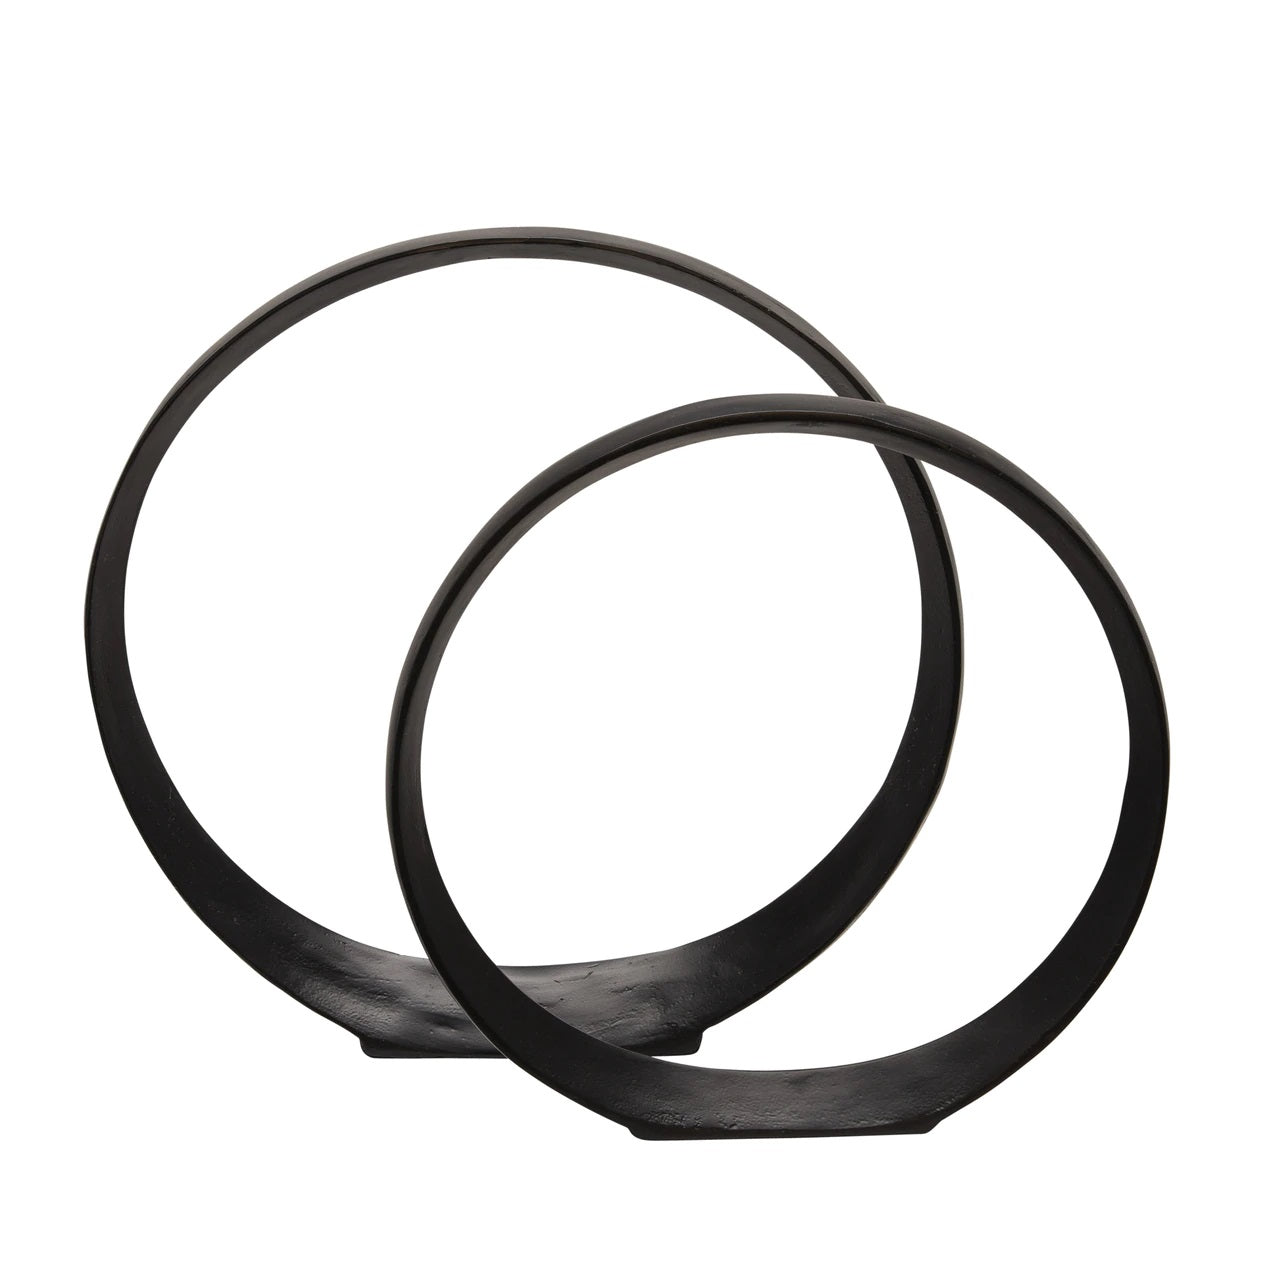 "Sed de 2 14/17"" CIRCLE SCULPTURES, BLACK"